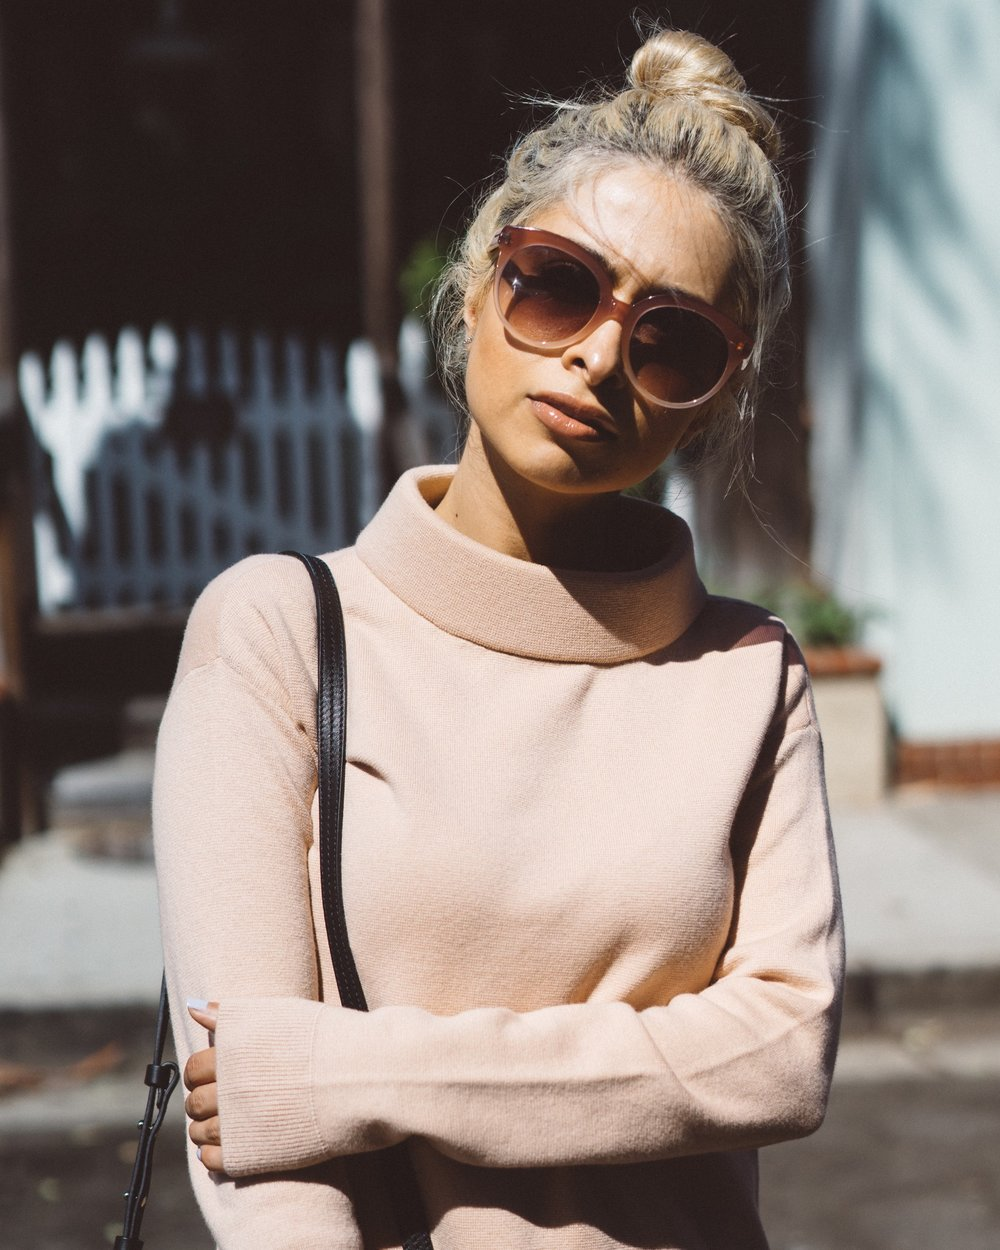 boatneck sweater_blush colored sweater_chloe faye bag_black chloe faye bag_ping sunglasses_blush colored sunglasses_tom ford sunglasses_faux leather pants_pointed toe black booties_savvy javvy_la fashion blogger_oc fashion blogger_best la fashion bloggers